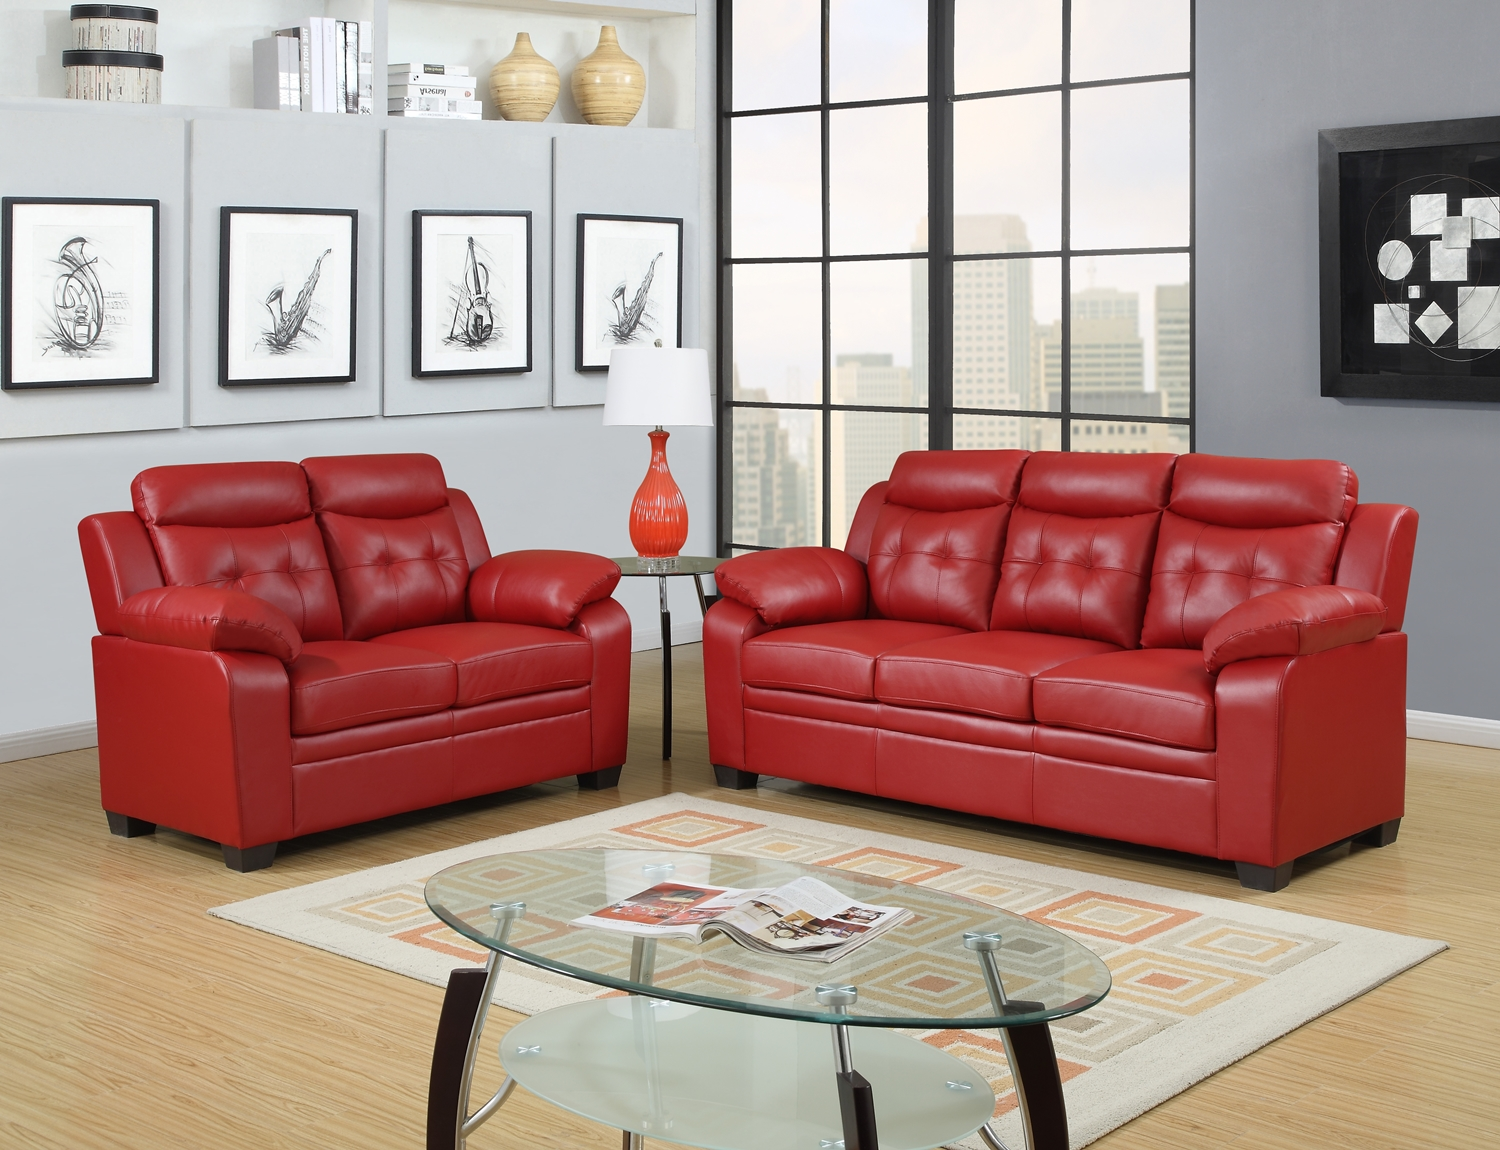 Living Room Leather Contemporary Sofa Sets | eBay